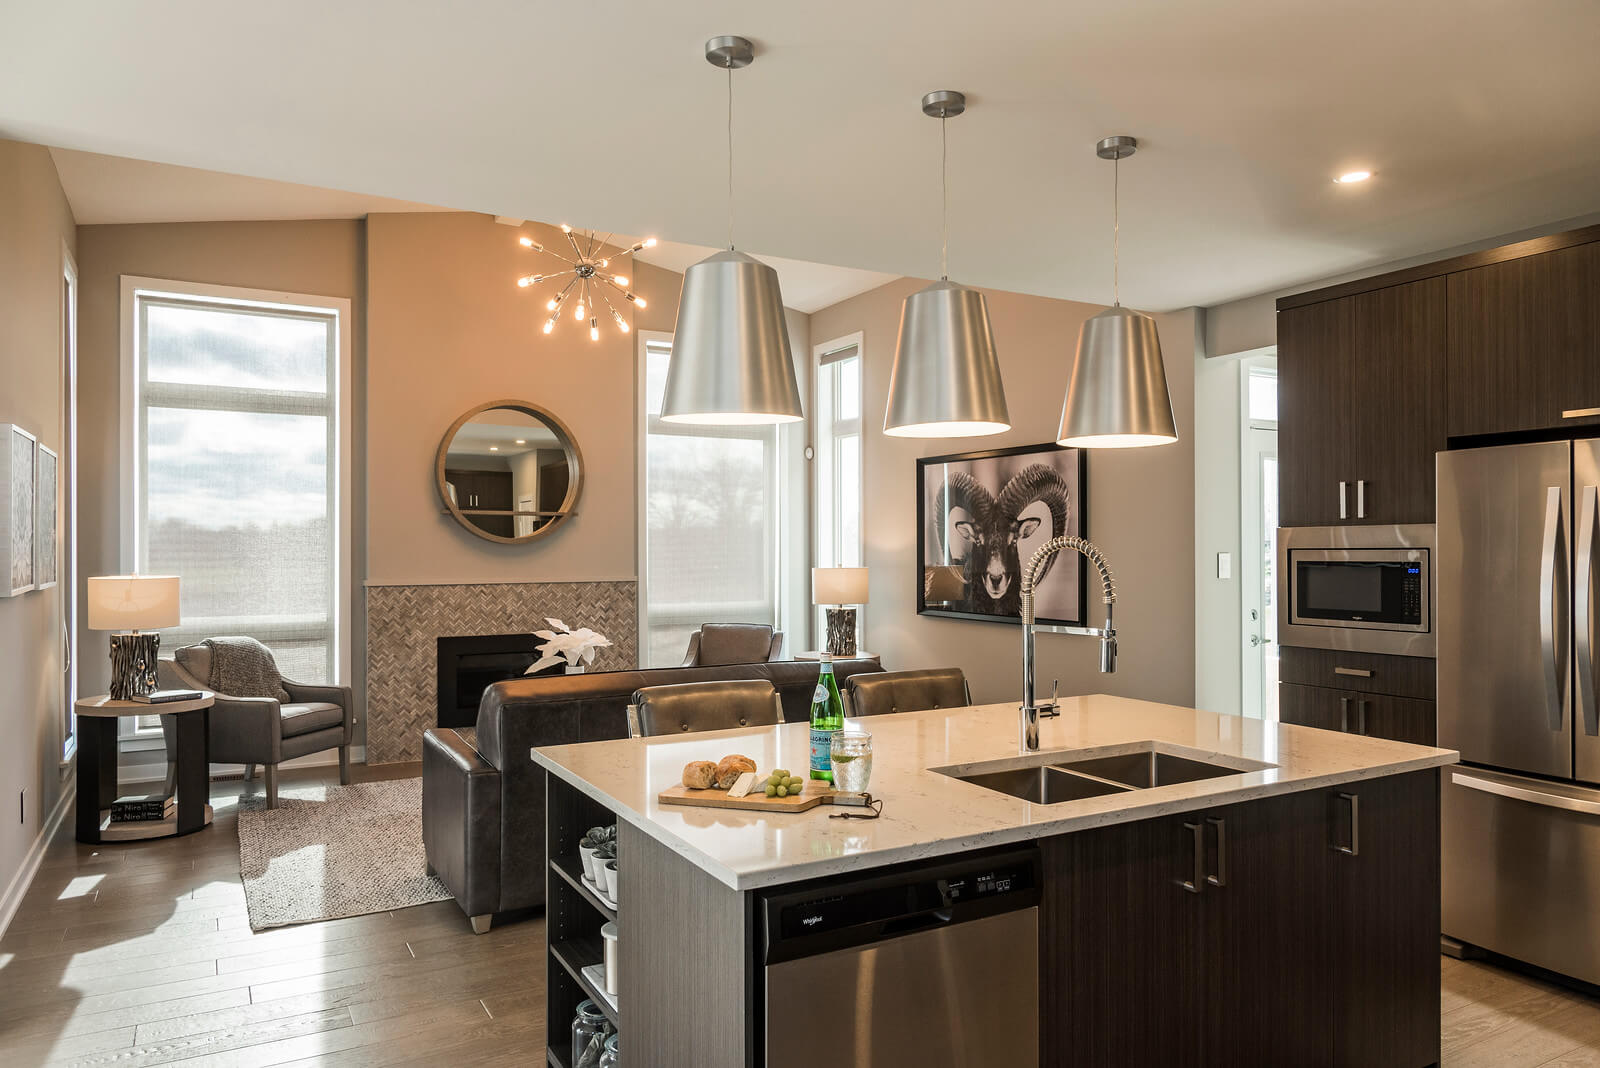 New Ottawa  Model Home Cornell in Millers Crossing in Carleton Place, located at 4 Flegg Way Built By Cardel Homes Ottawa